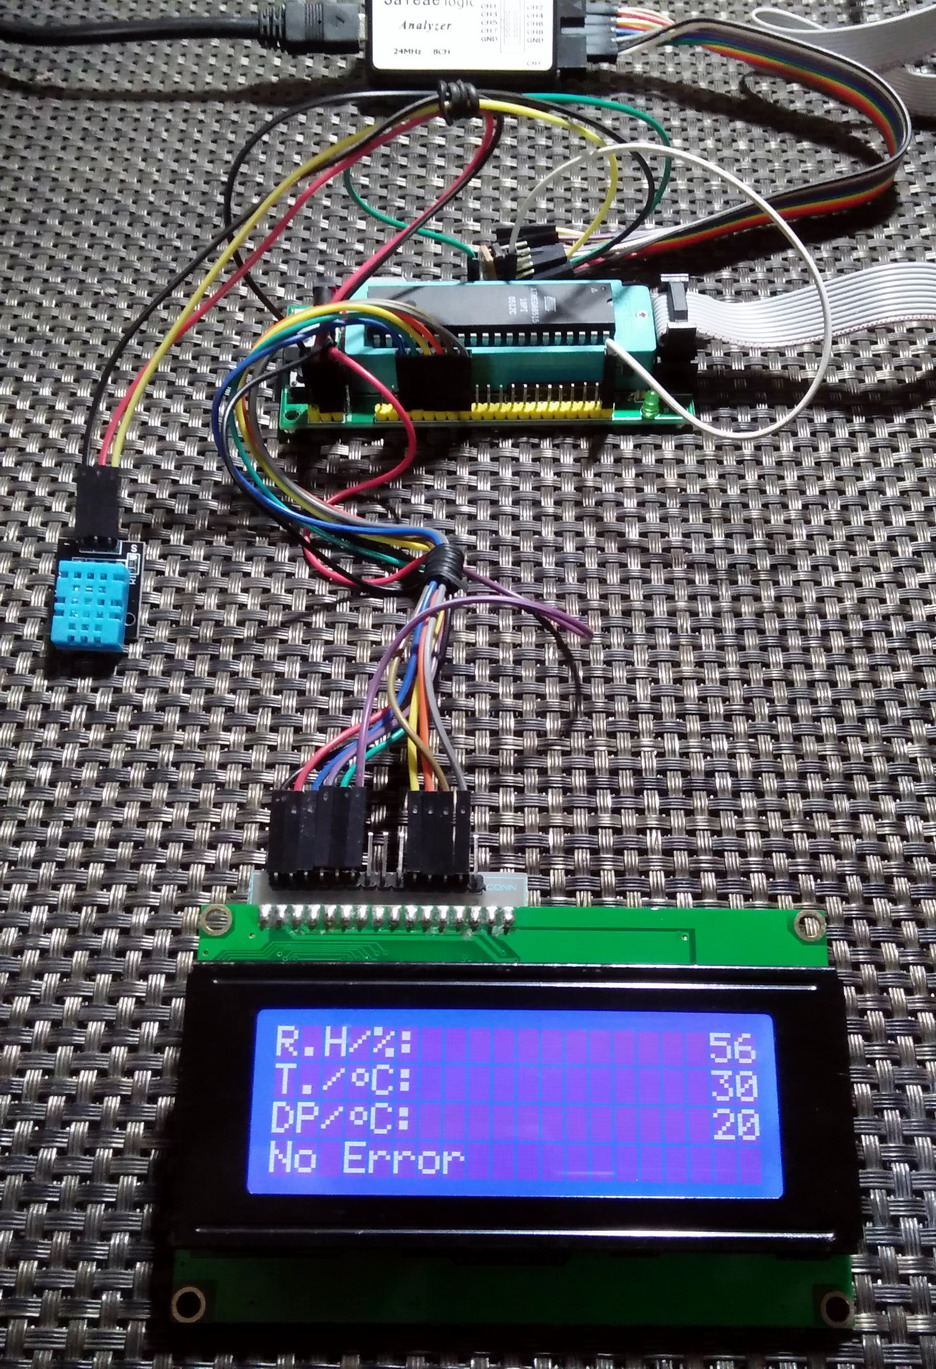 Libstock Dht11 Sensor Demo With Avrs Interrupt And Timer Based Projects Electronics Proojects Project Setup